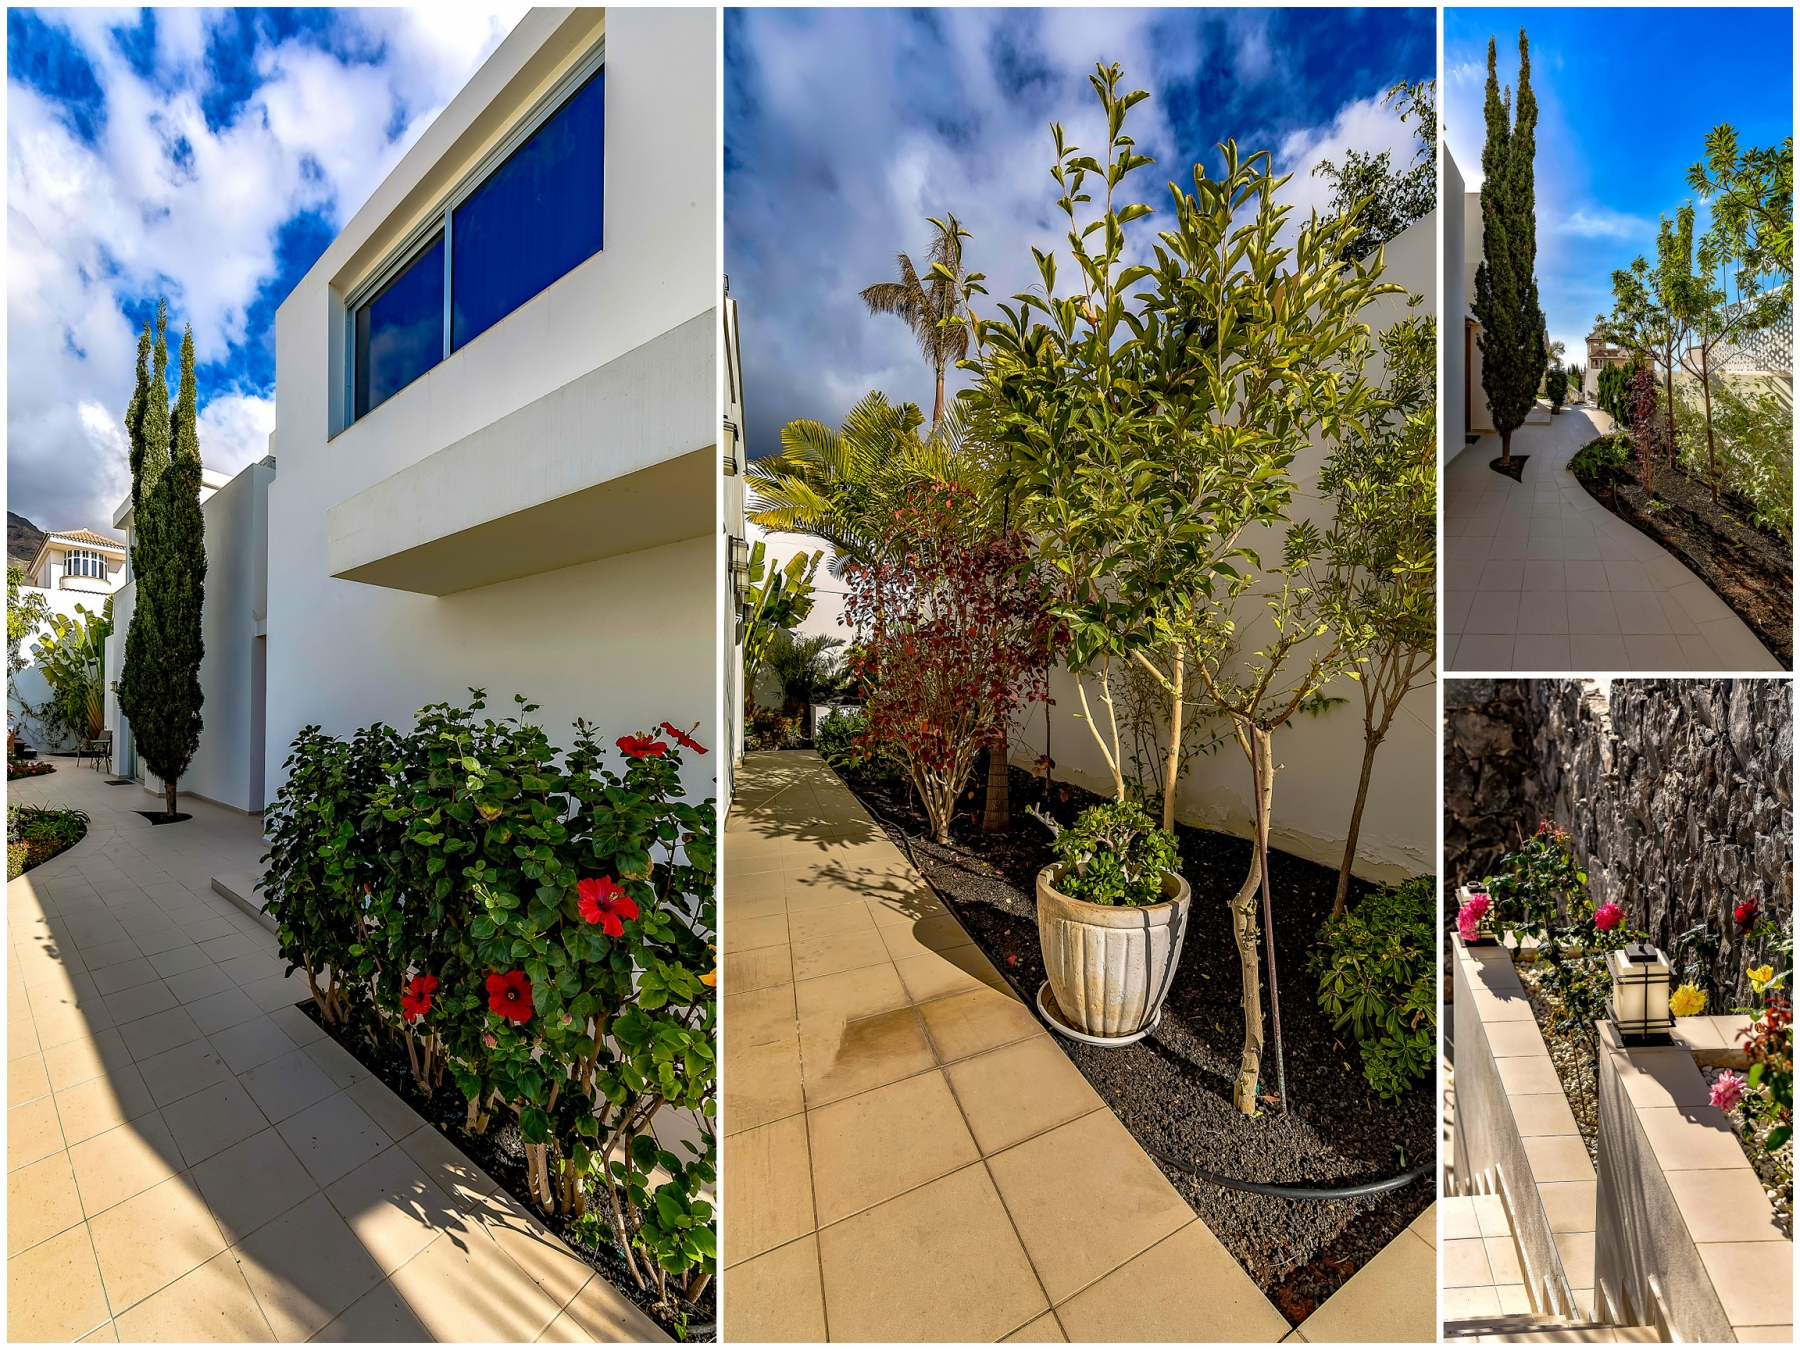 Properties for Sale in Tenerife, Canary Islands, Spain   SylkWayStar Real Estate. Luxury villa in the fashionable area of the south of the island of Tenerife – Madroñal.. Image-22856